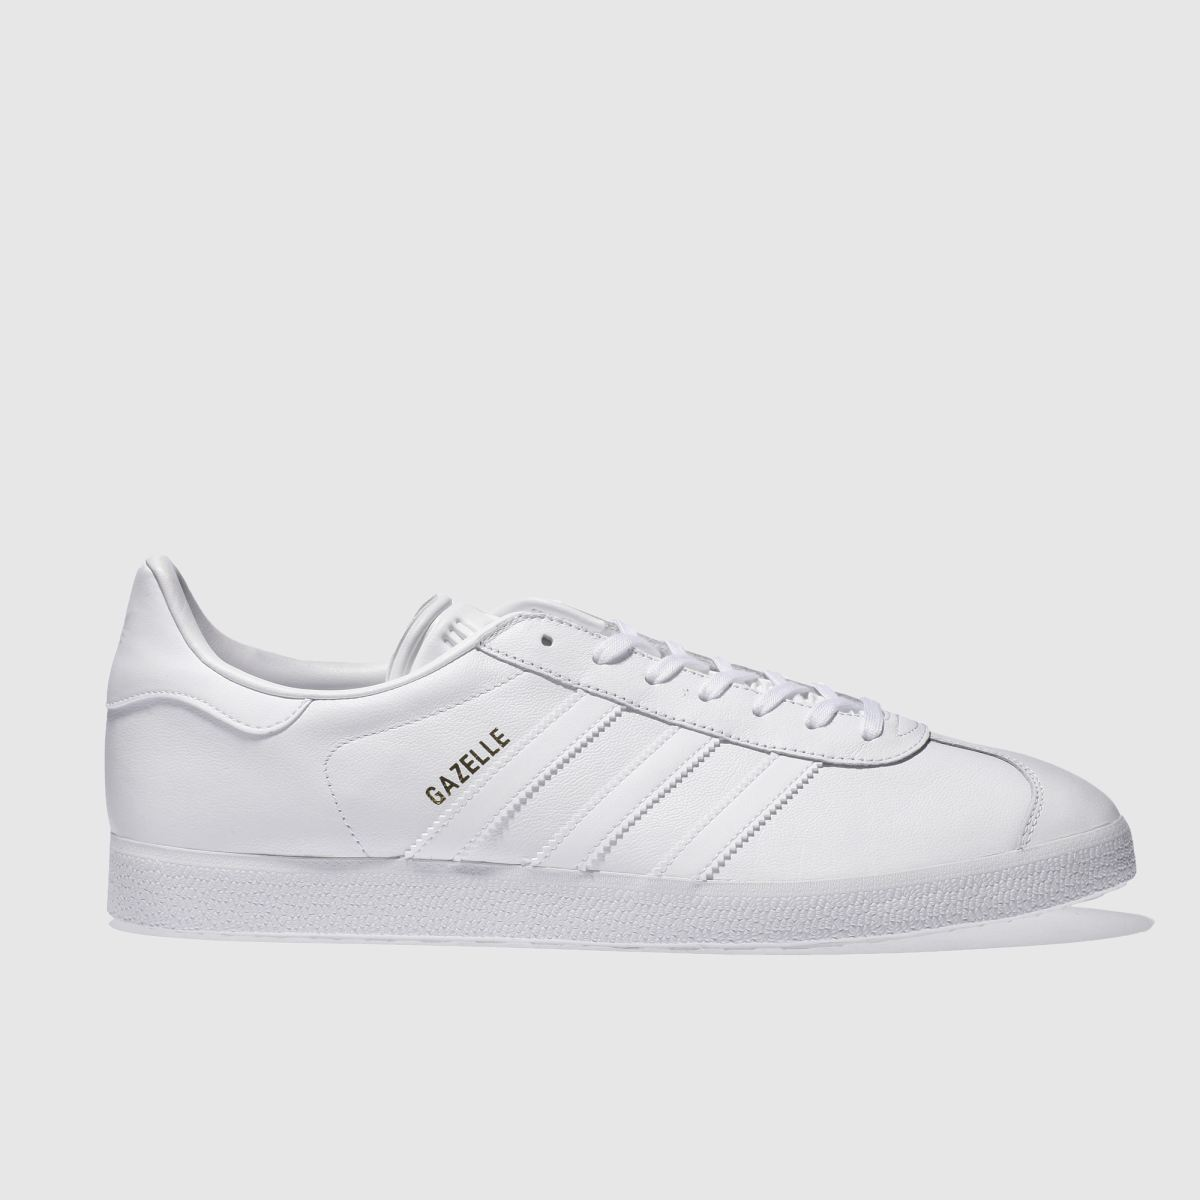 adidas Trainers Gazelle, Stan Smith and more at Soletrader